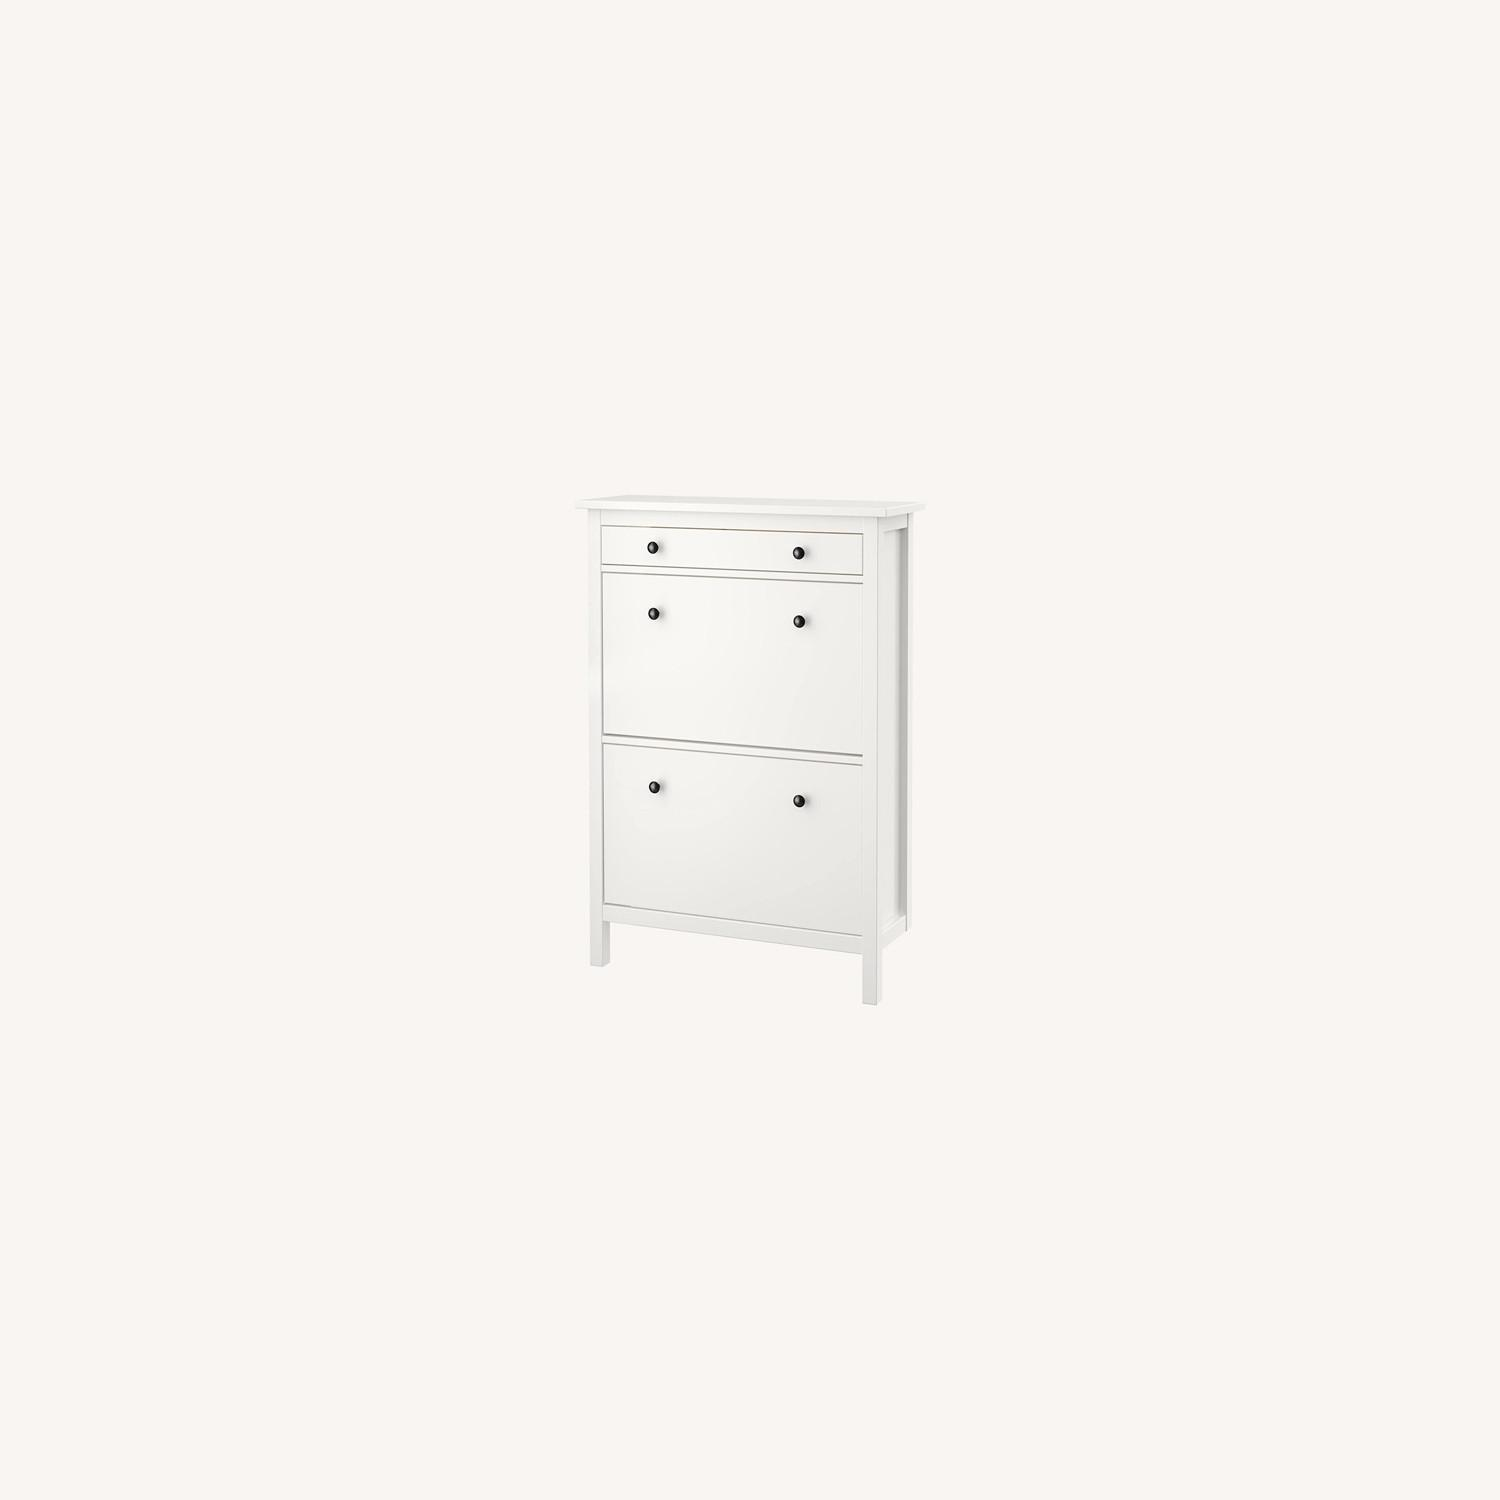 IKEA Shoe Cabinet with 2 Compartments - image-0